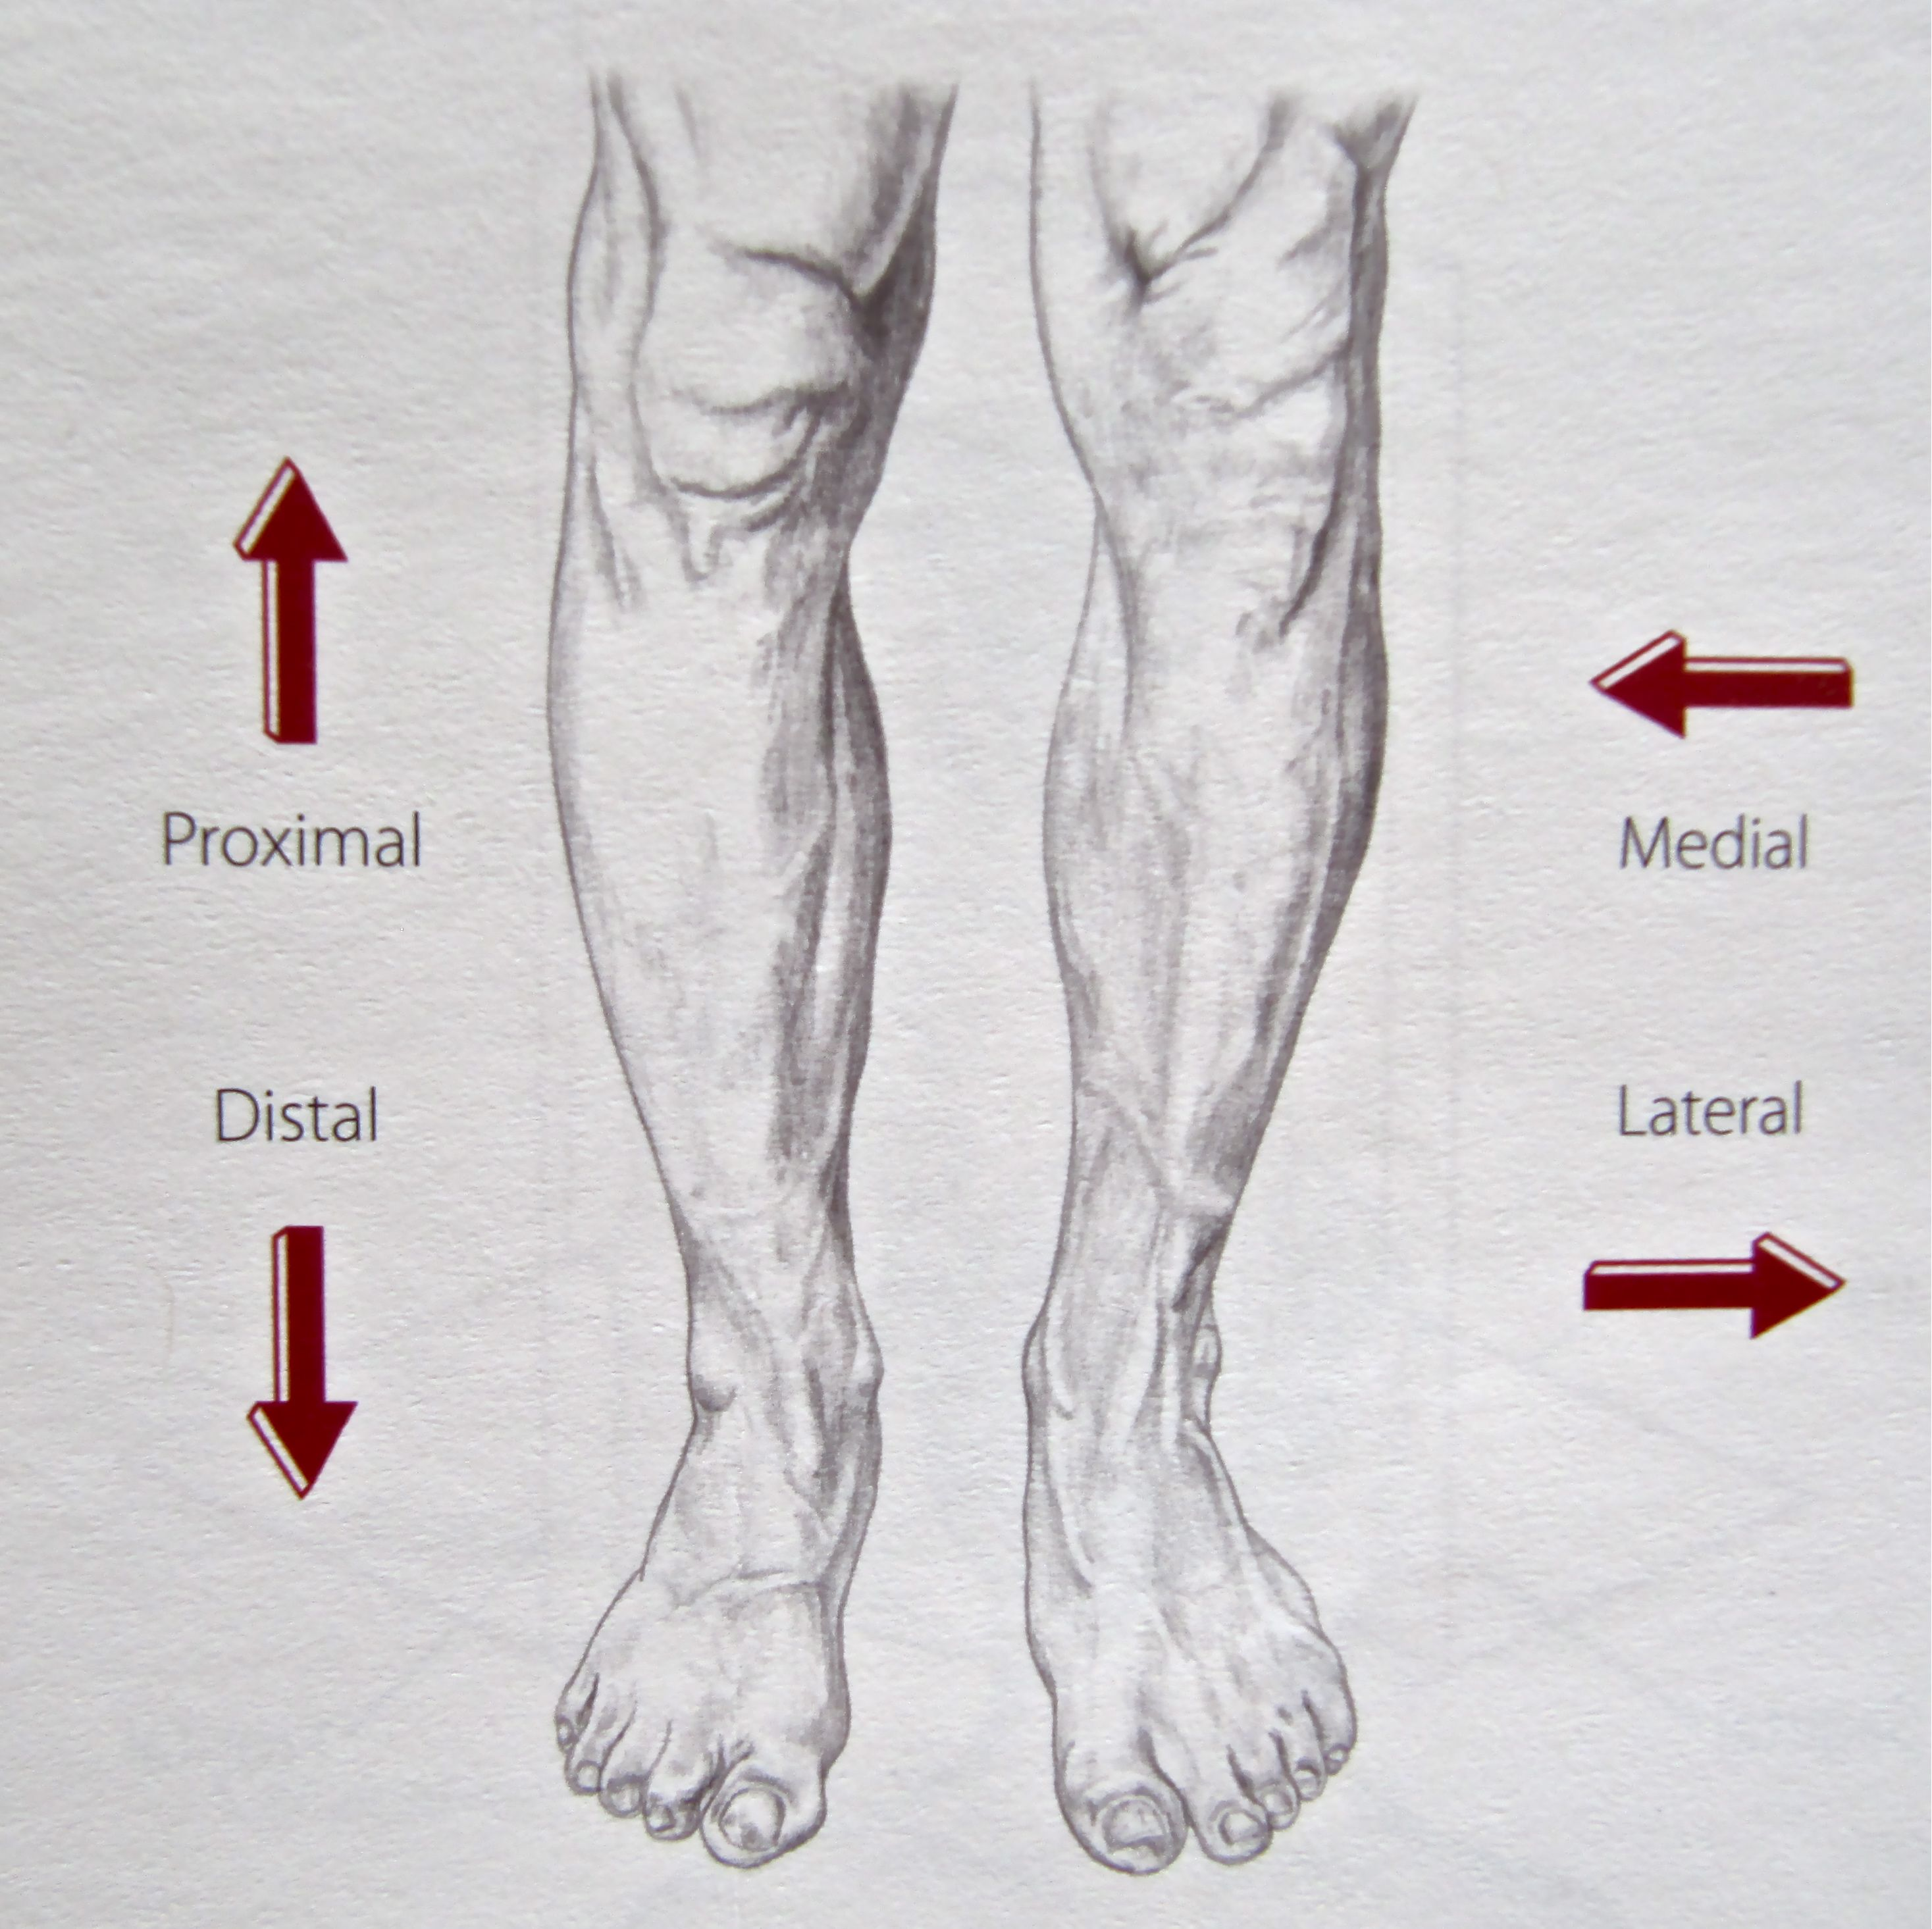 foreshortened feet and leg drawings | Notes on Anatomy and Physiology: Learning with the Hand and Elbow |